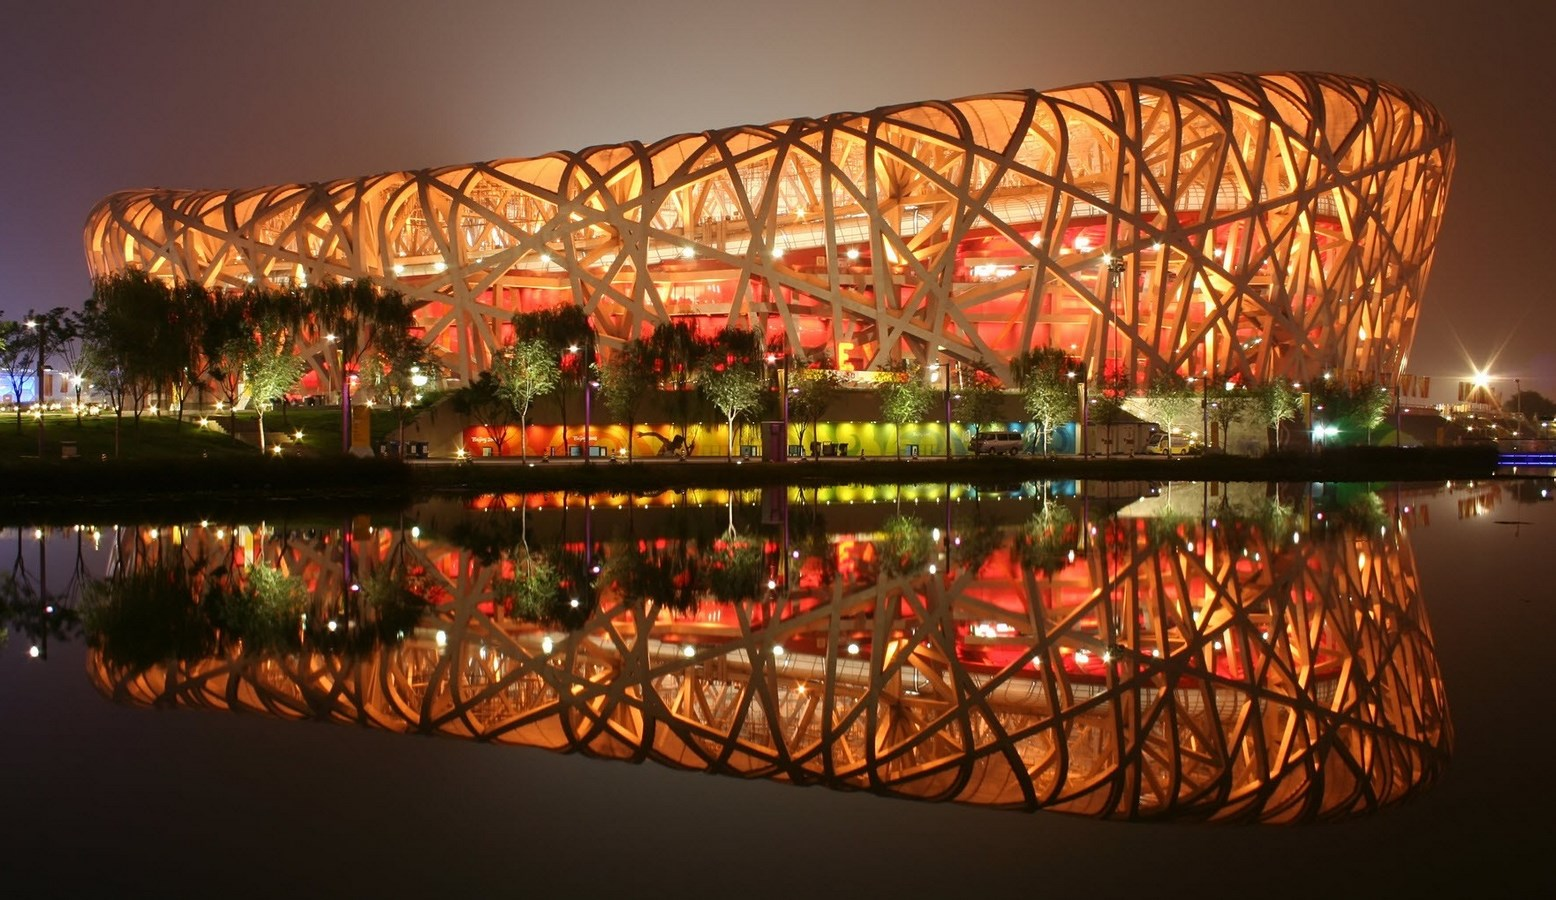 100 Best Architecture Projects of the 21st Century - Beijing National Stadium, China